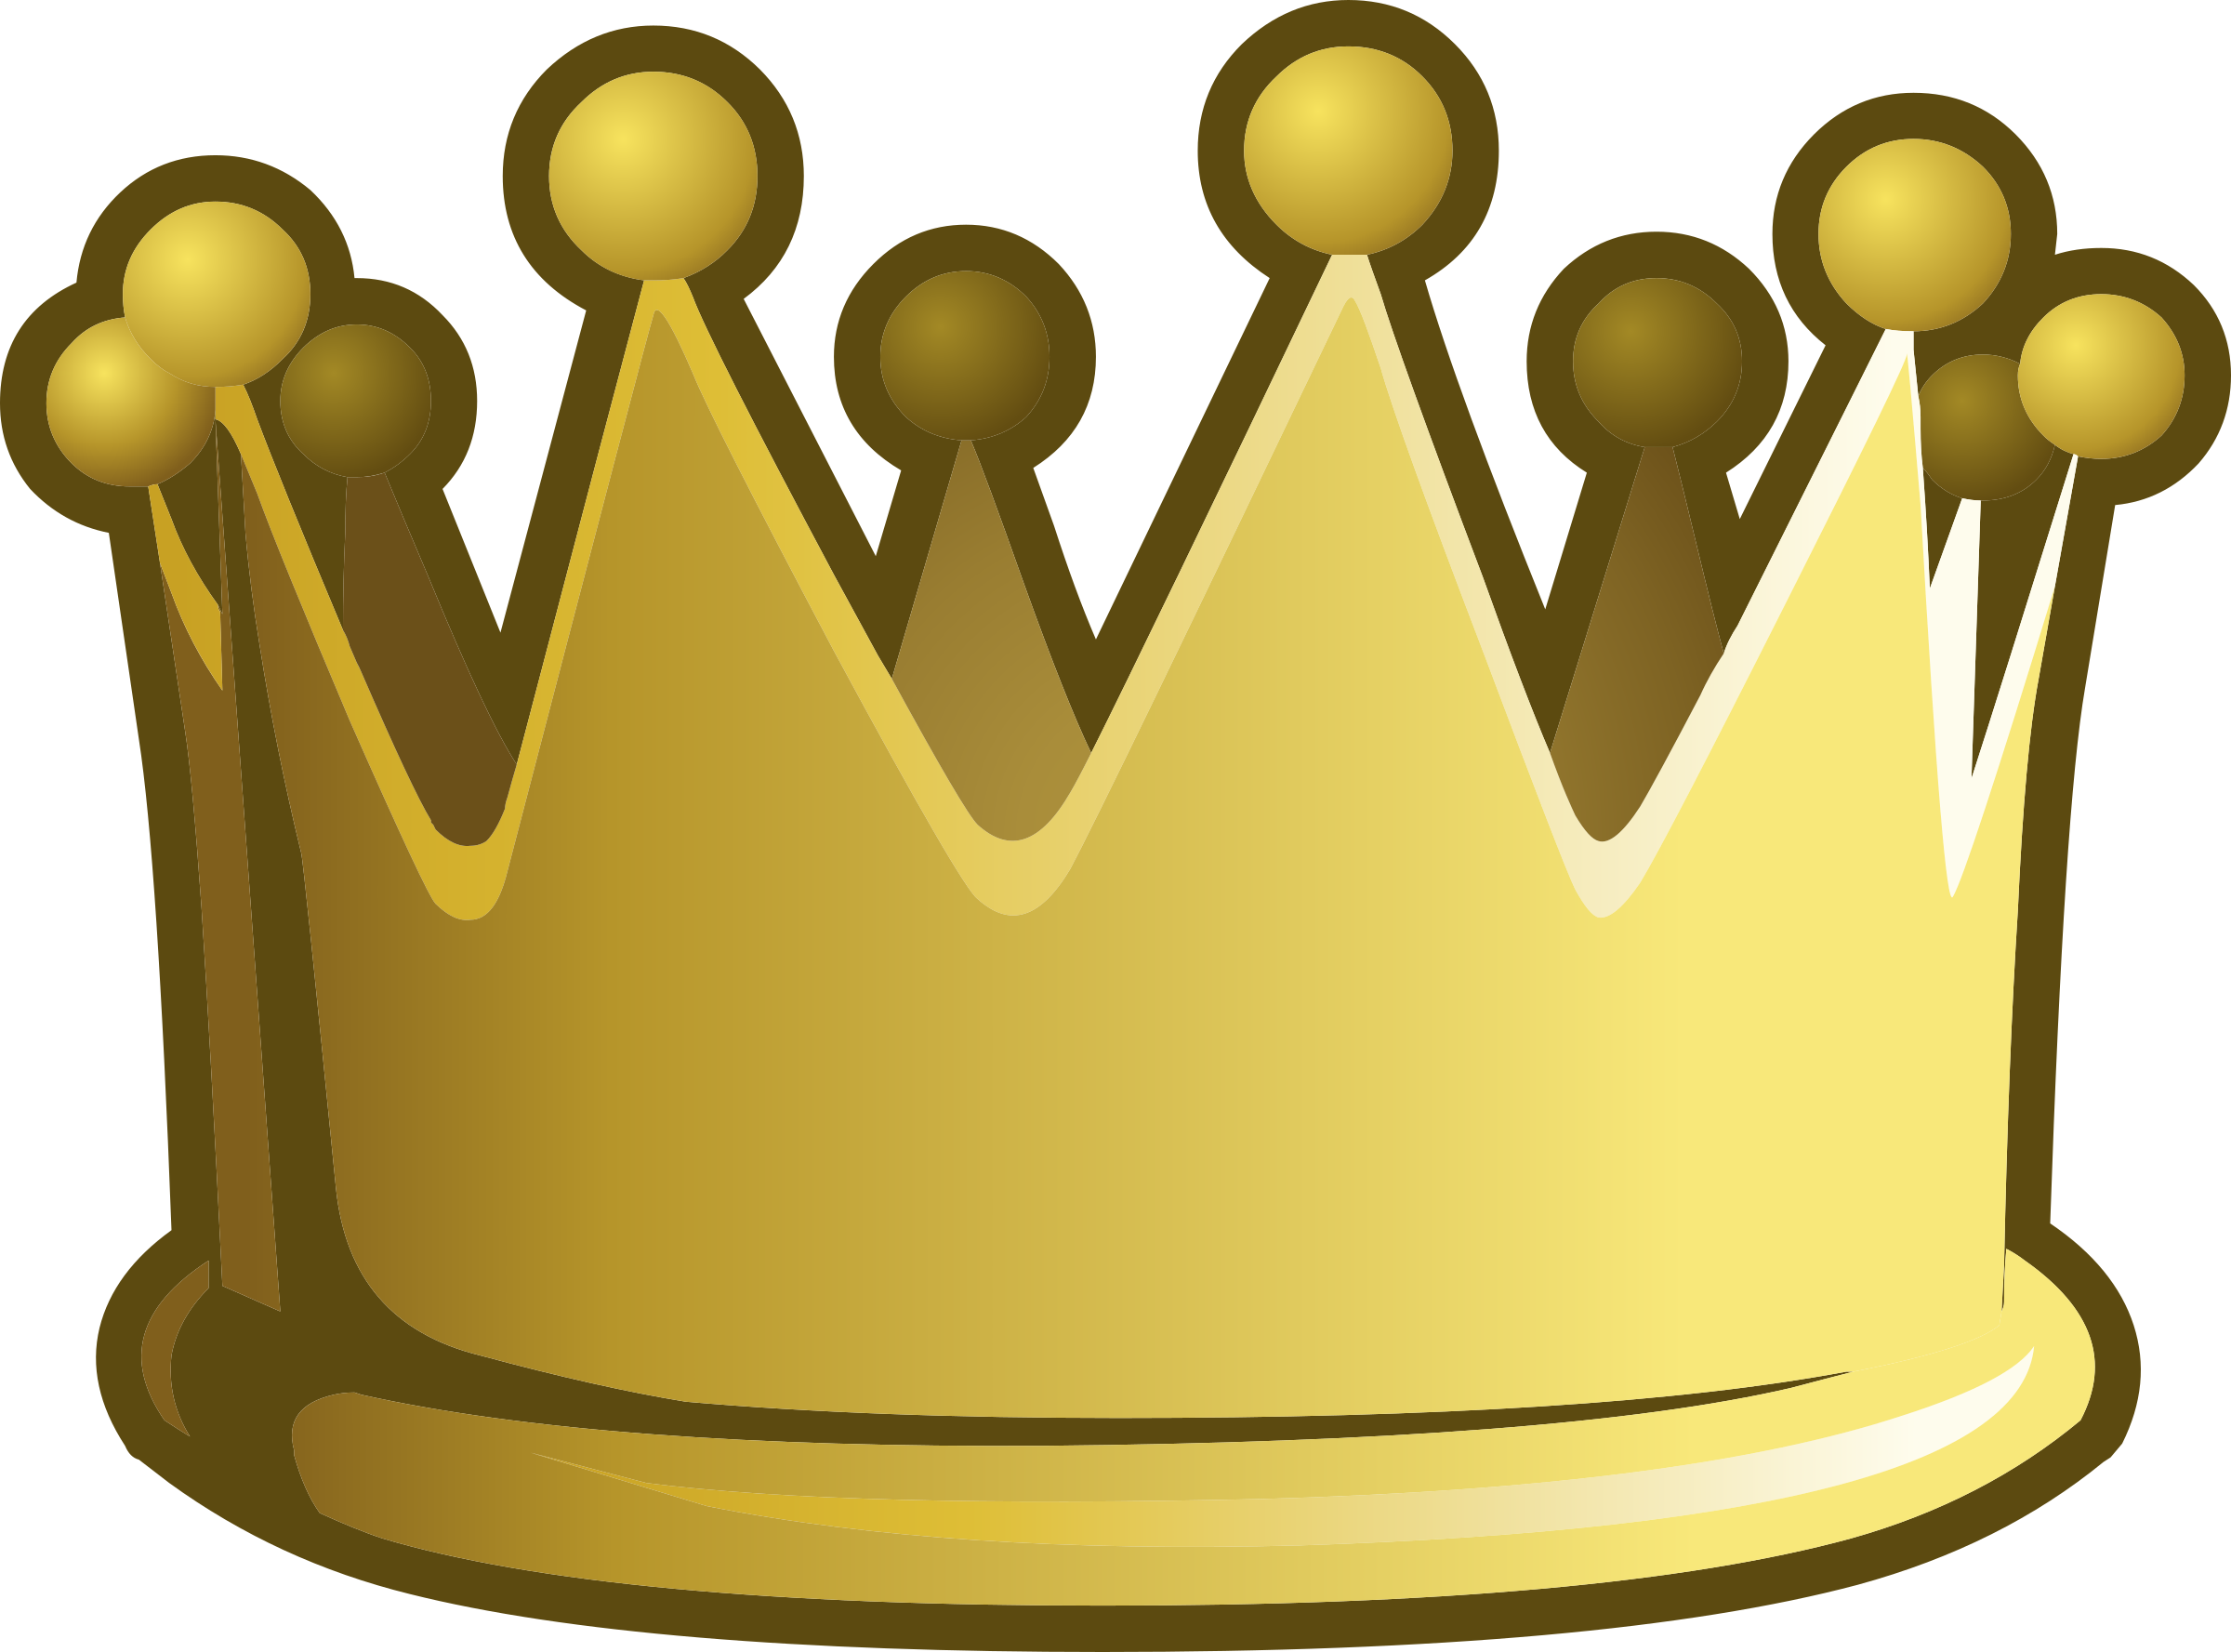 Misc crown big image. Game clipart number game